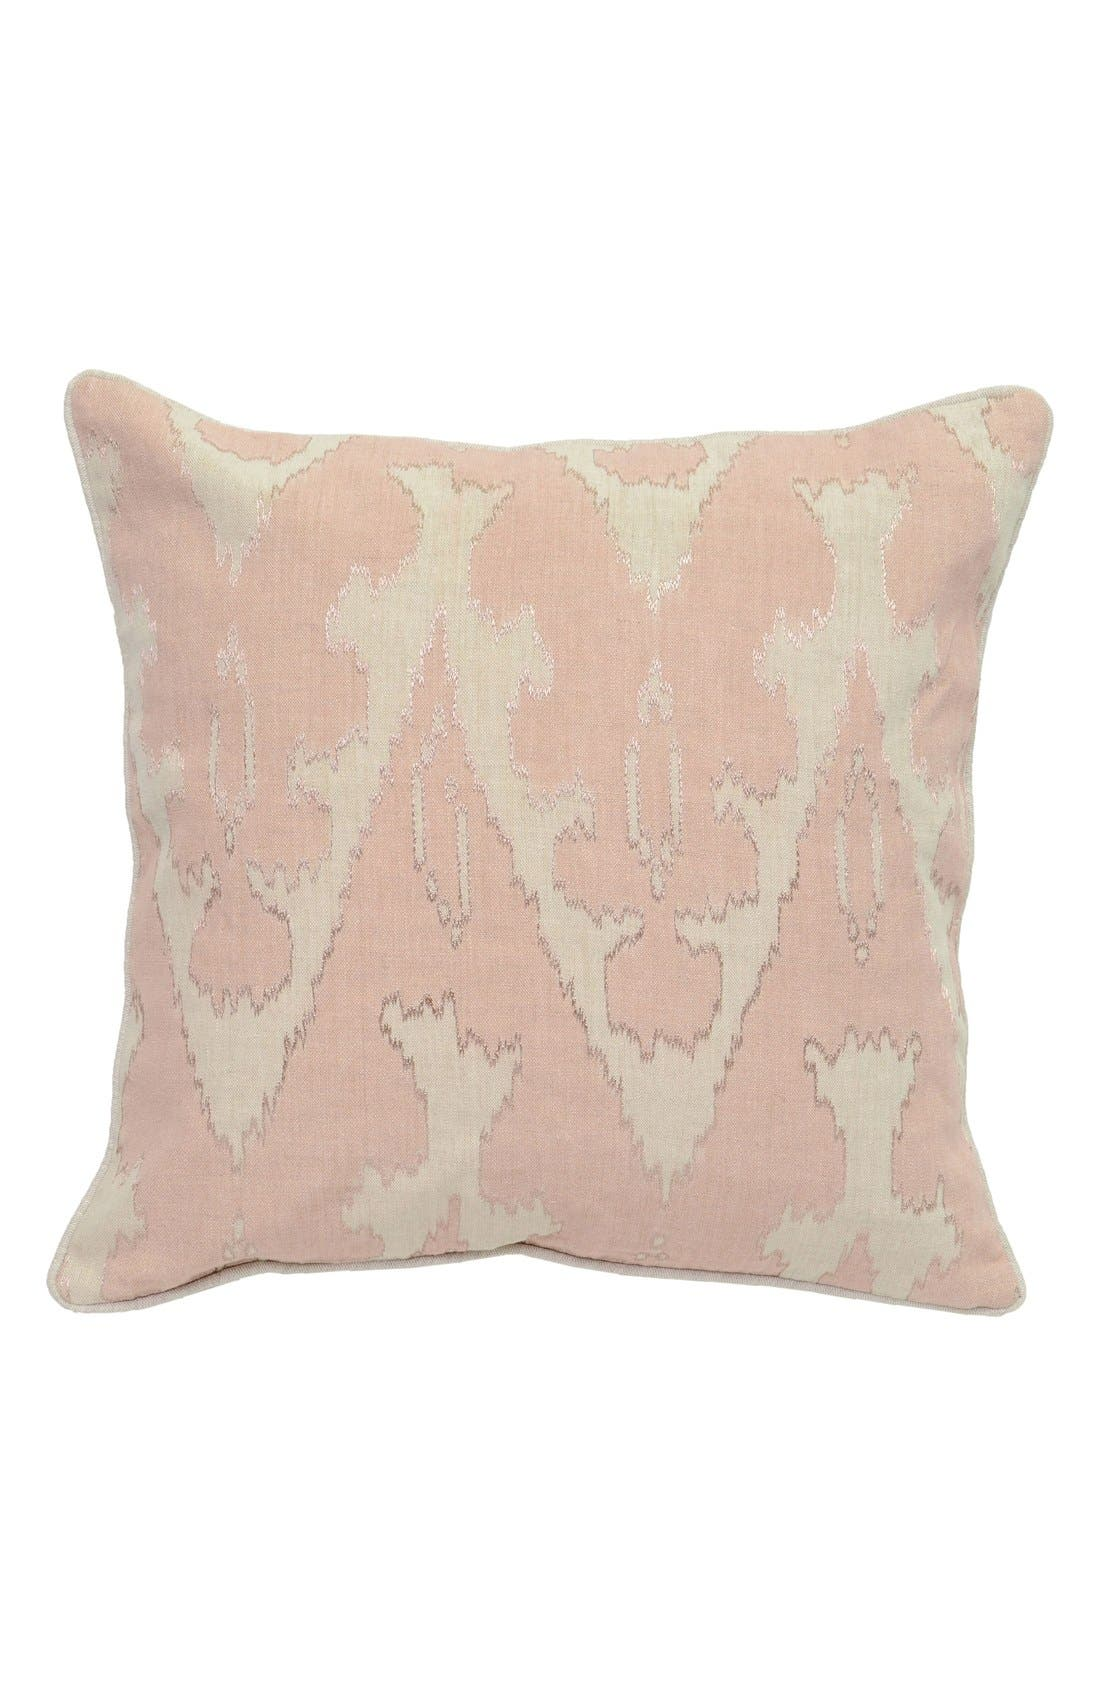 Fae Accent Pillow,                         Main,                         color, Beige/ Blush